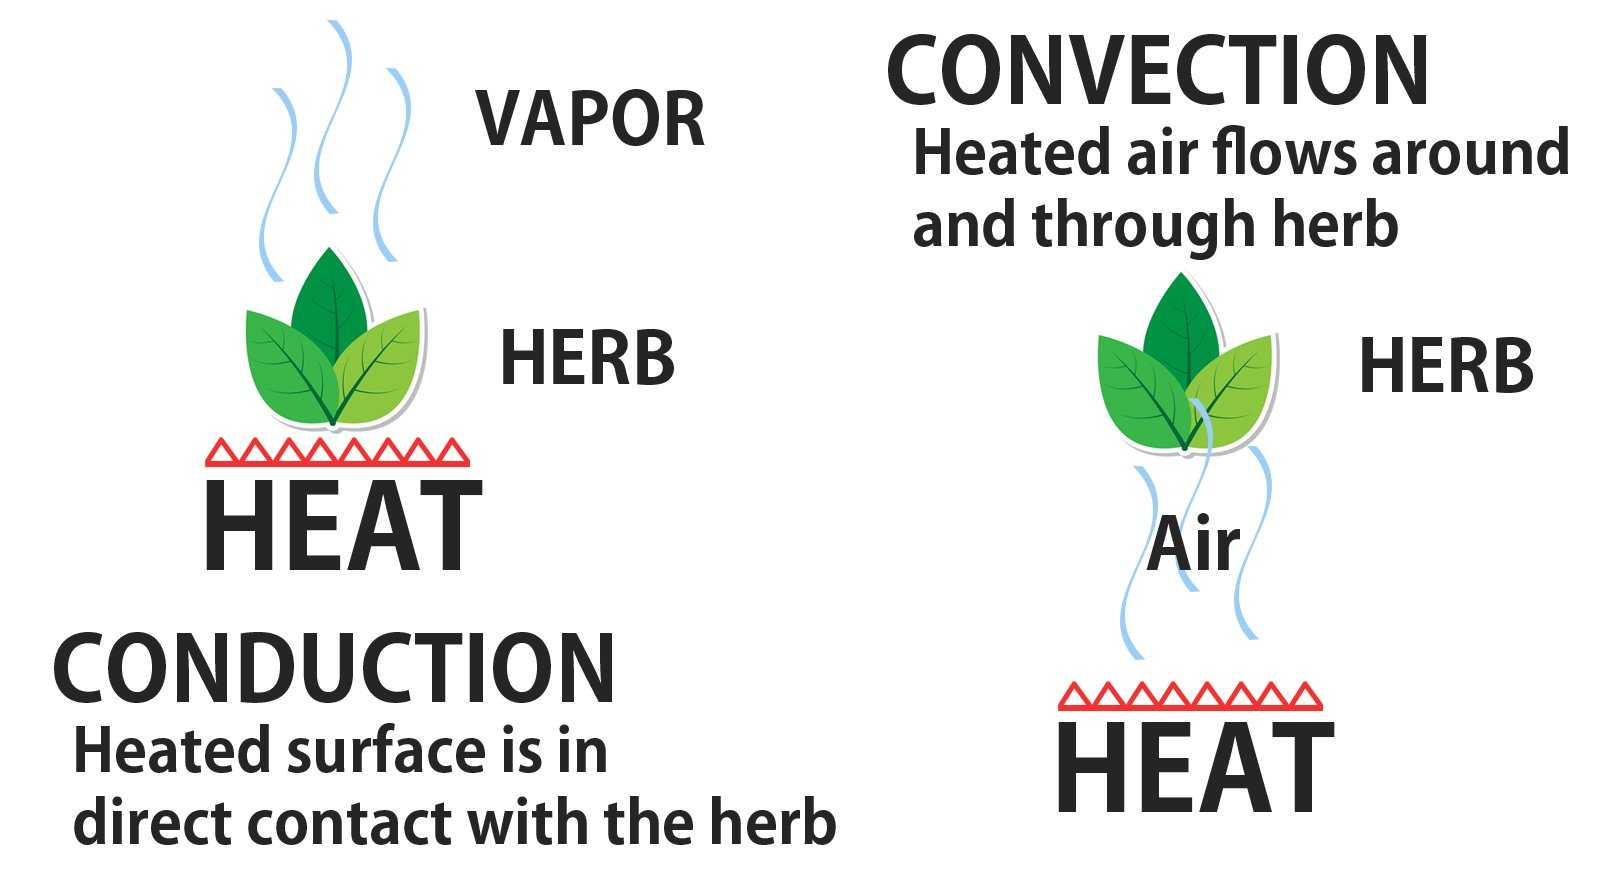 Concudtion vs Convection Beginners Guide to Dry Herb Vaporizers